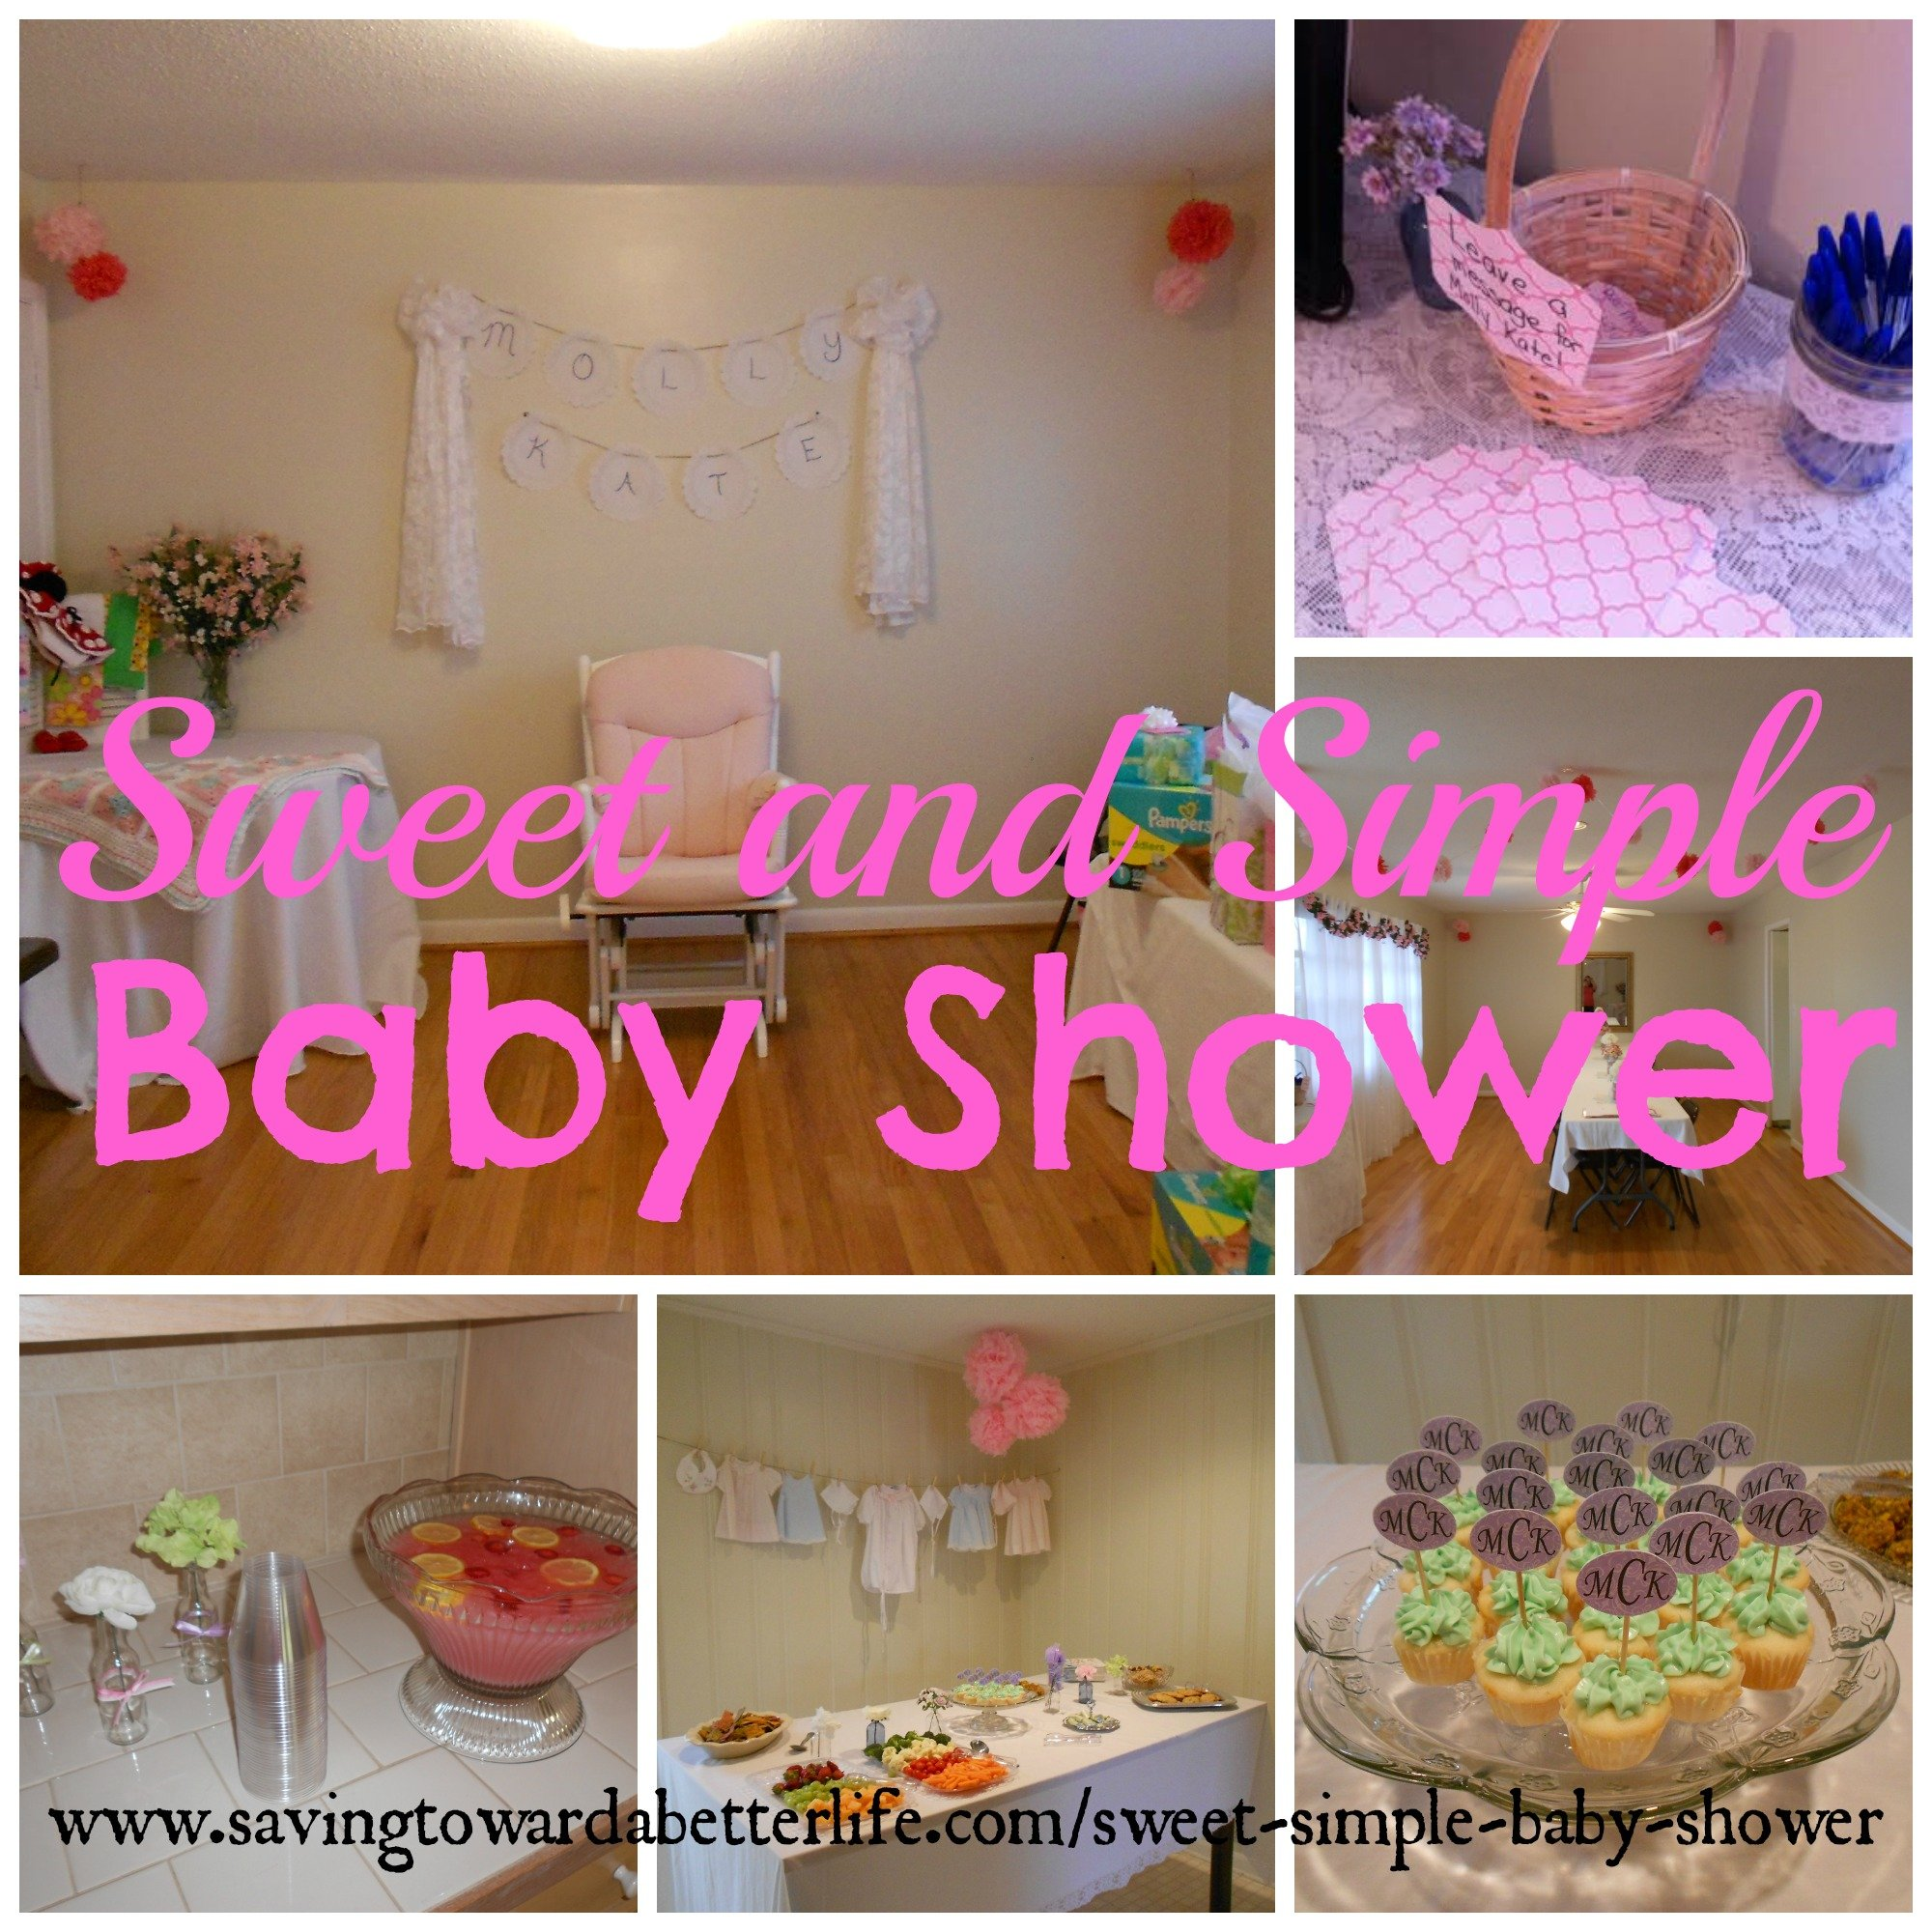 Sweet and simple baby shower ideas saving toward a